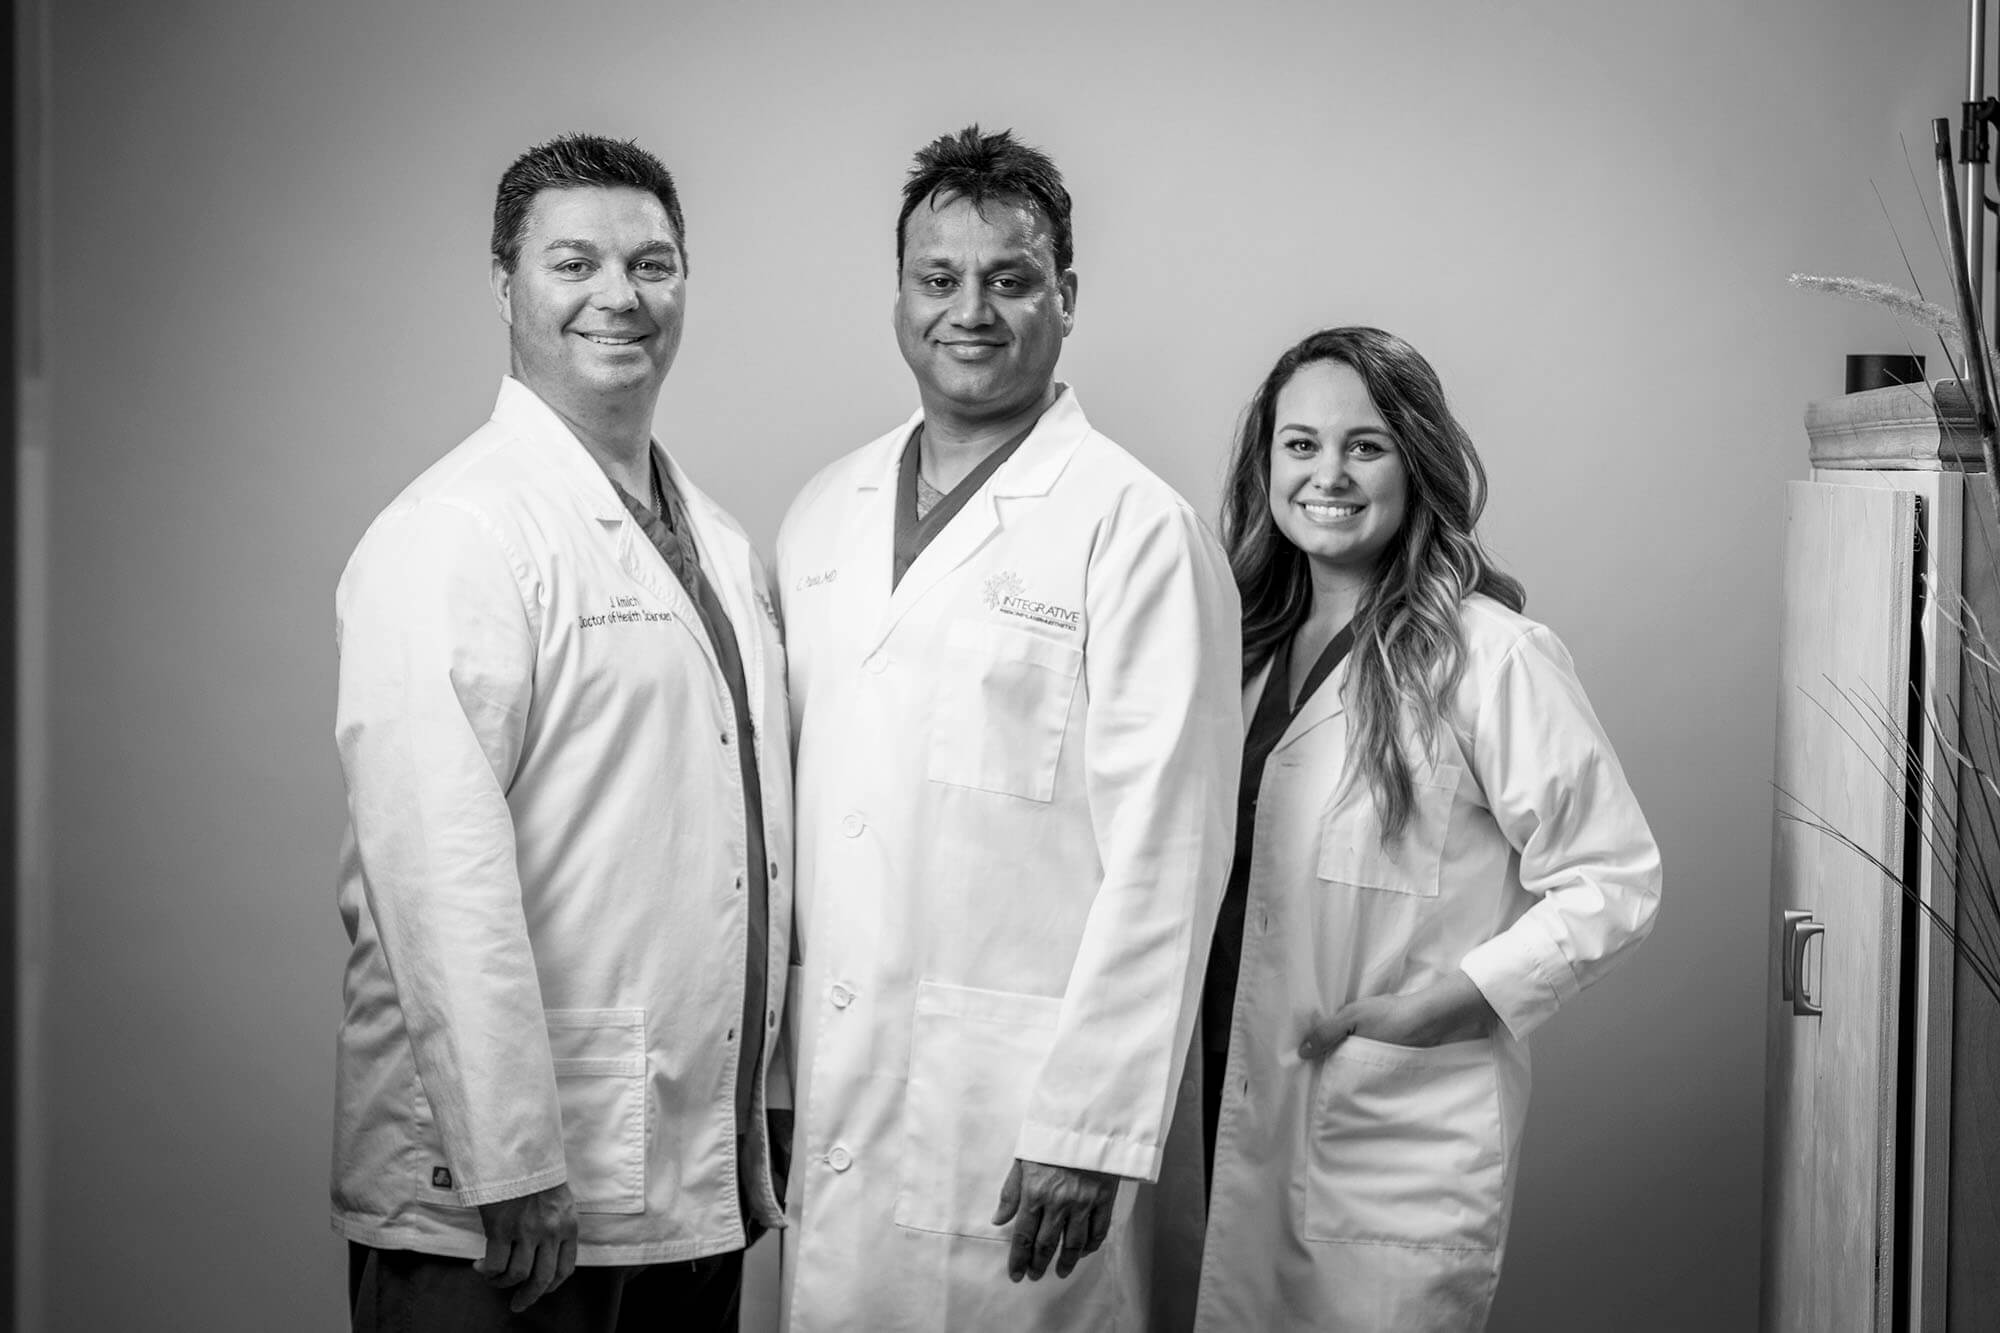 Integrative Medicine, Laser and Aesthetics team Indianapolis Functional Medicine Provider